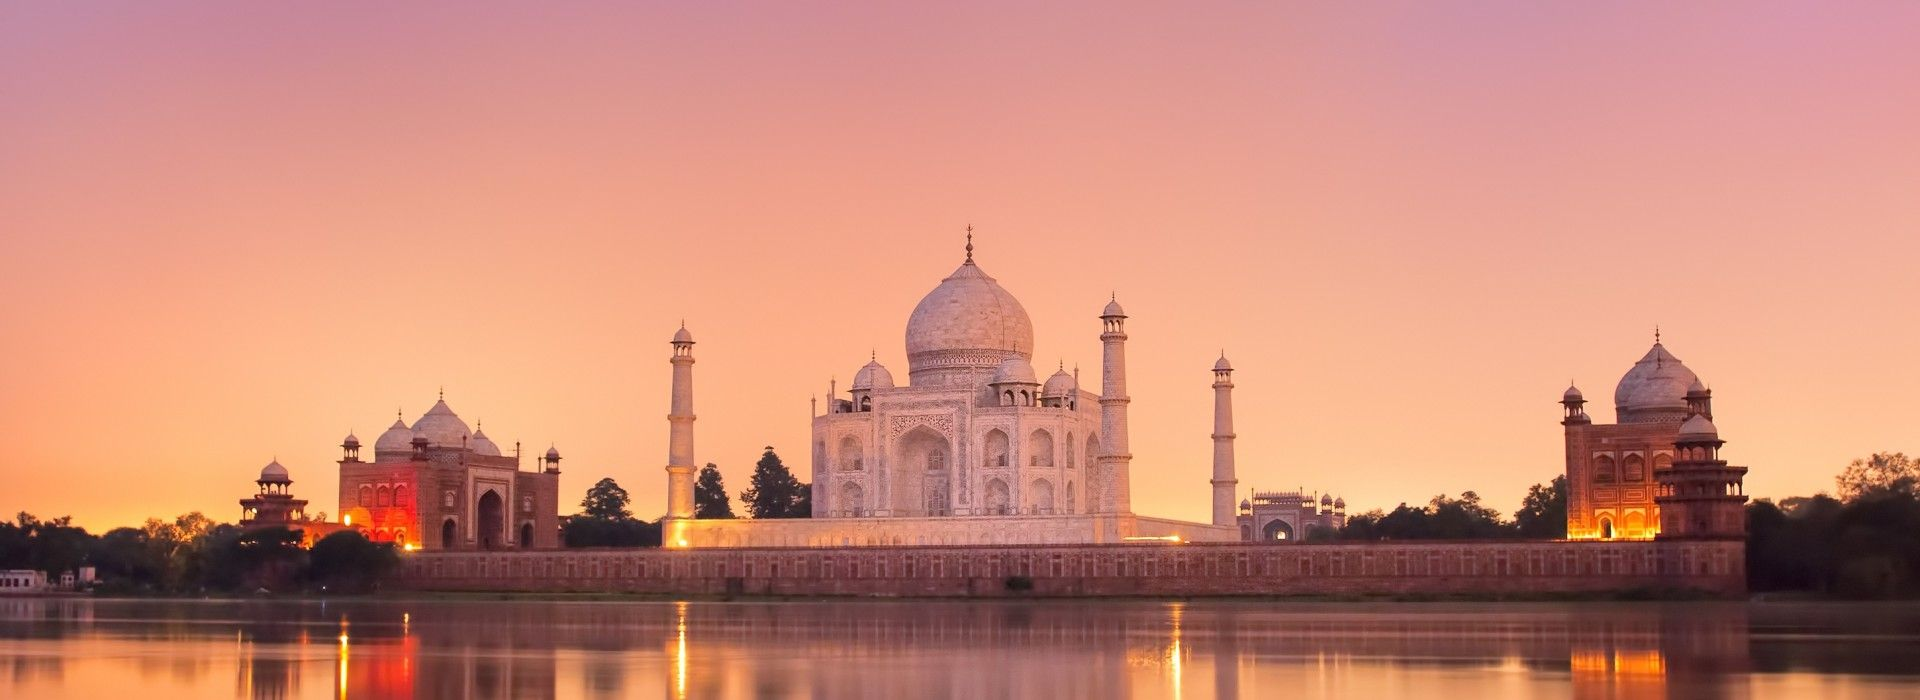 Sightseeing, attractions, culture and history Tours in Kolkata